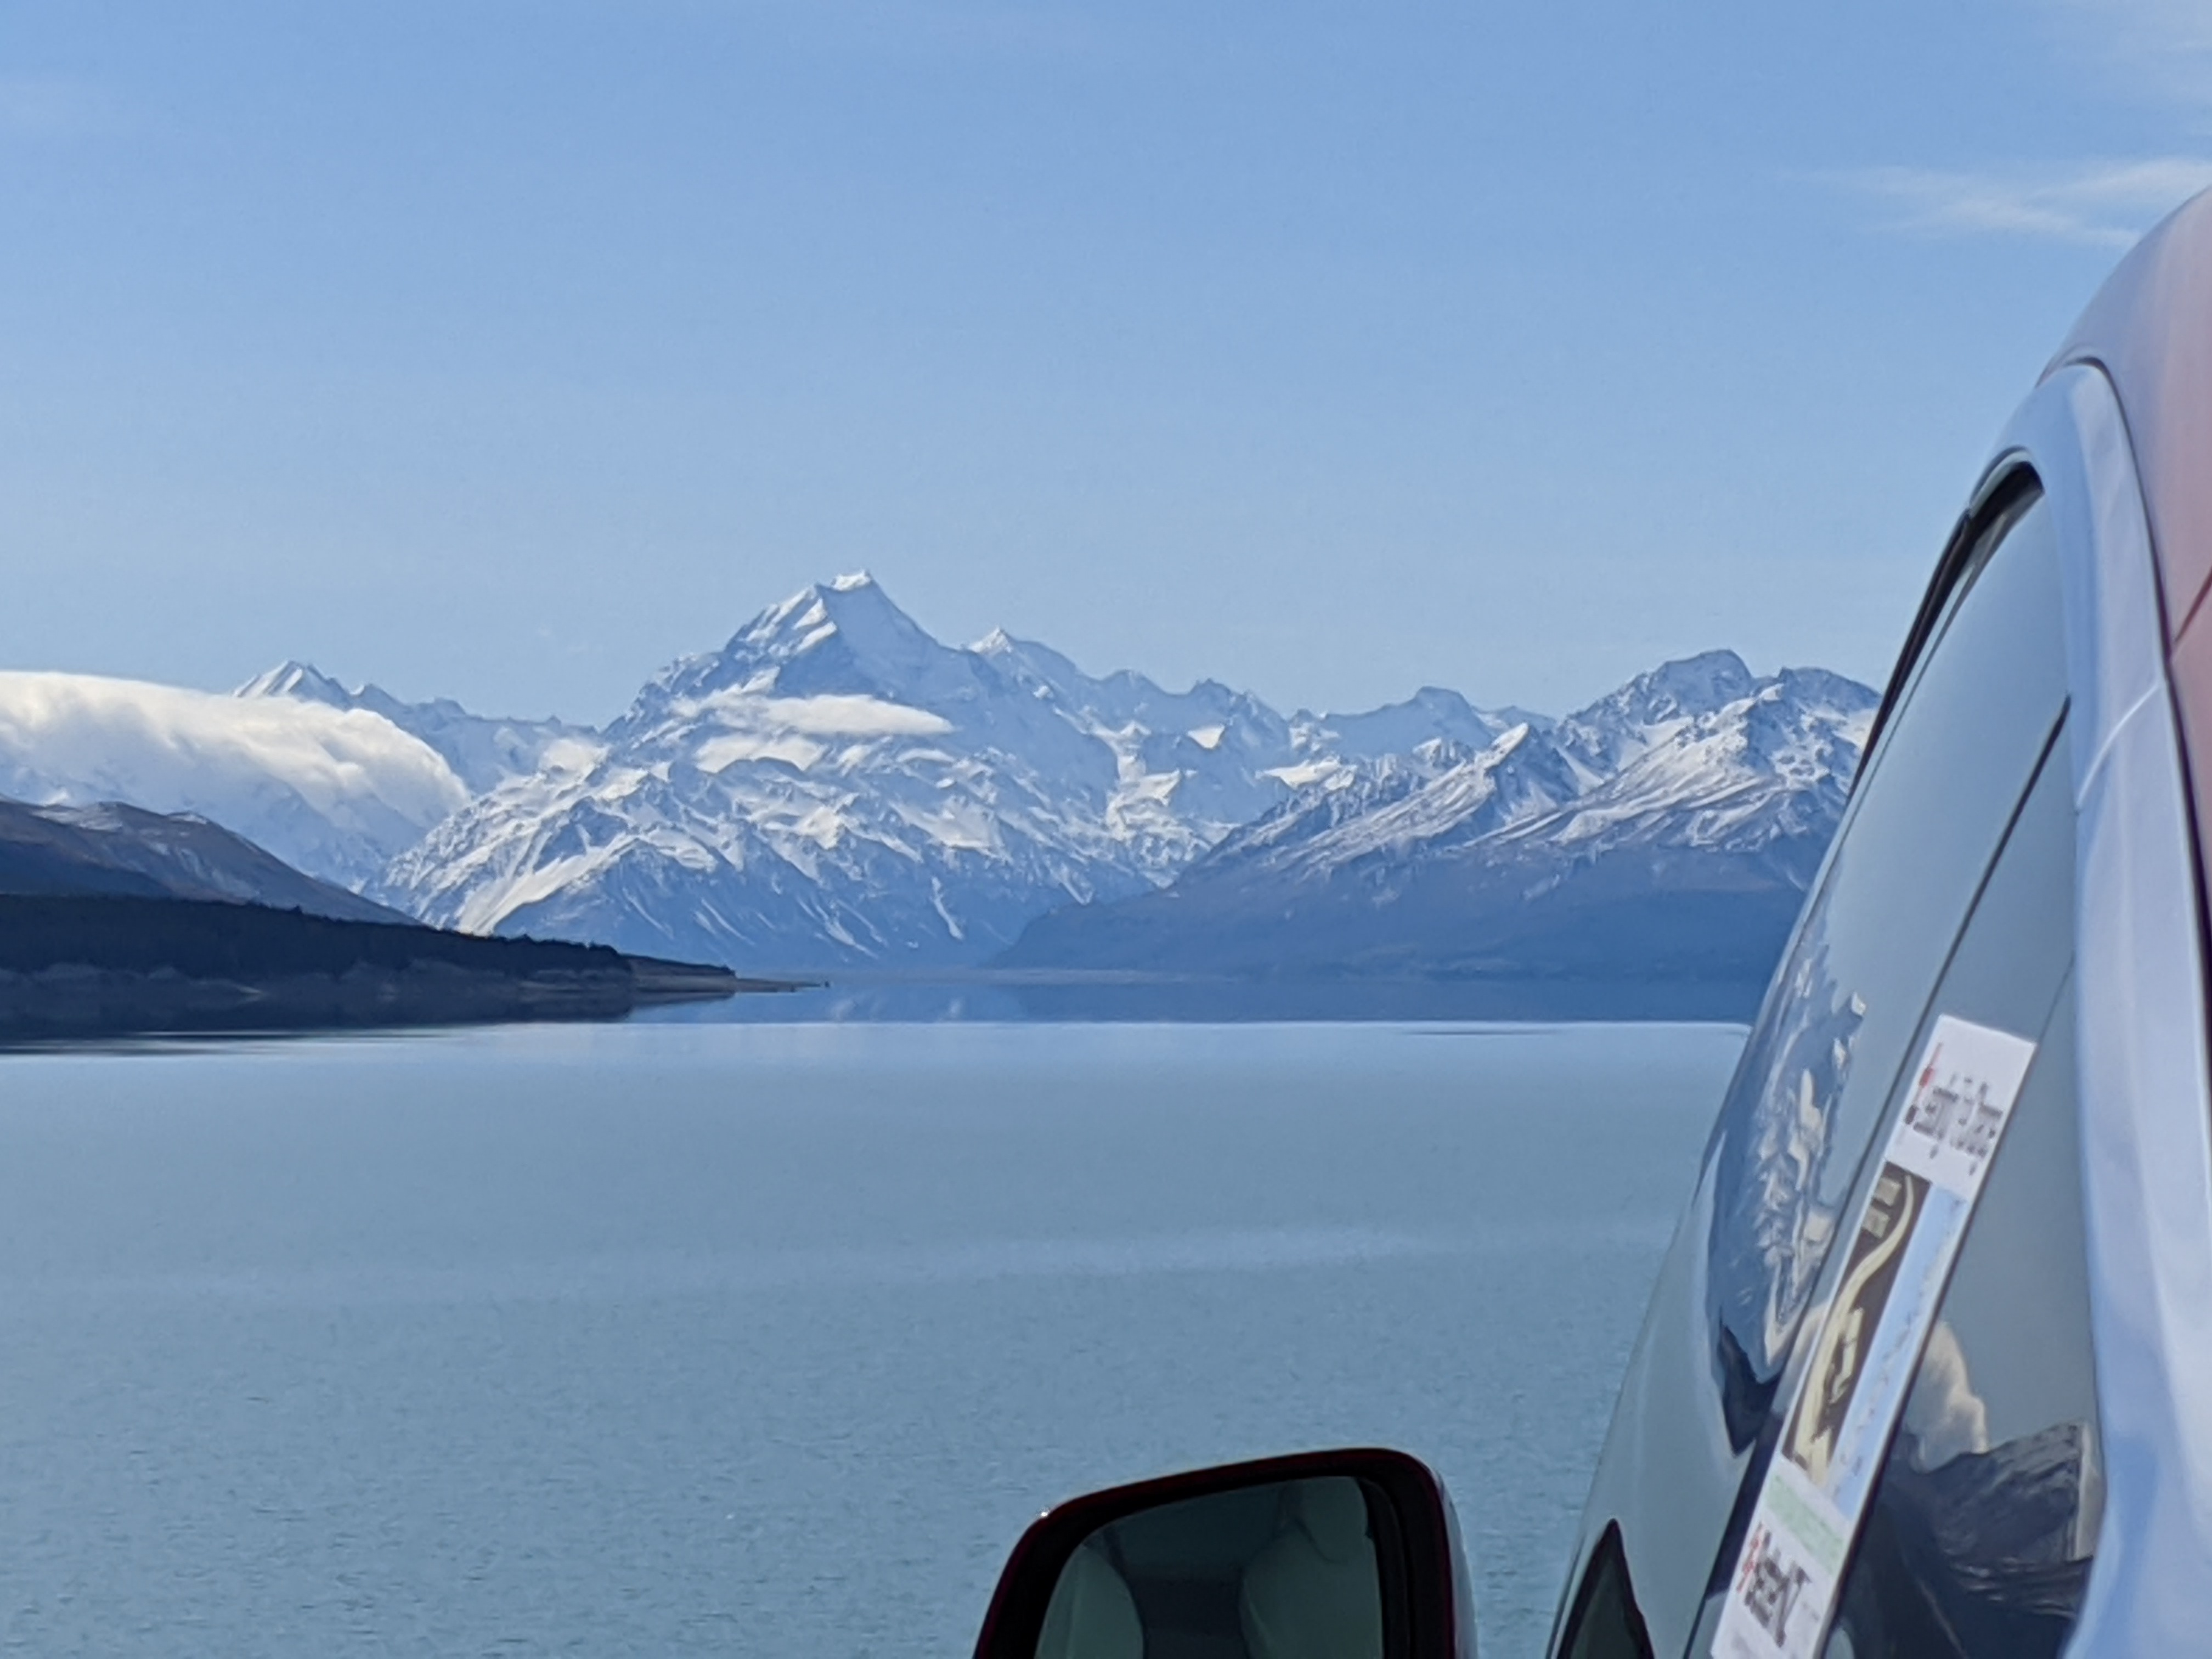 Very from the Pukaki lookout